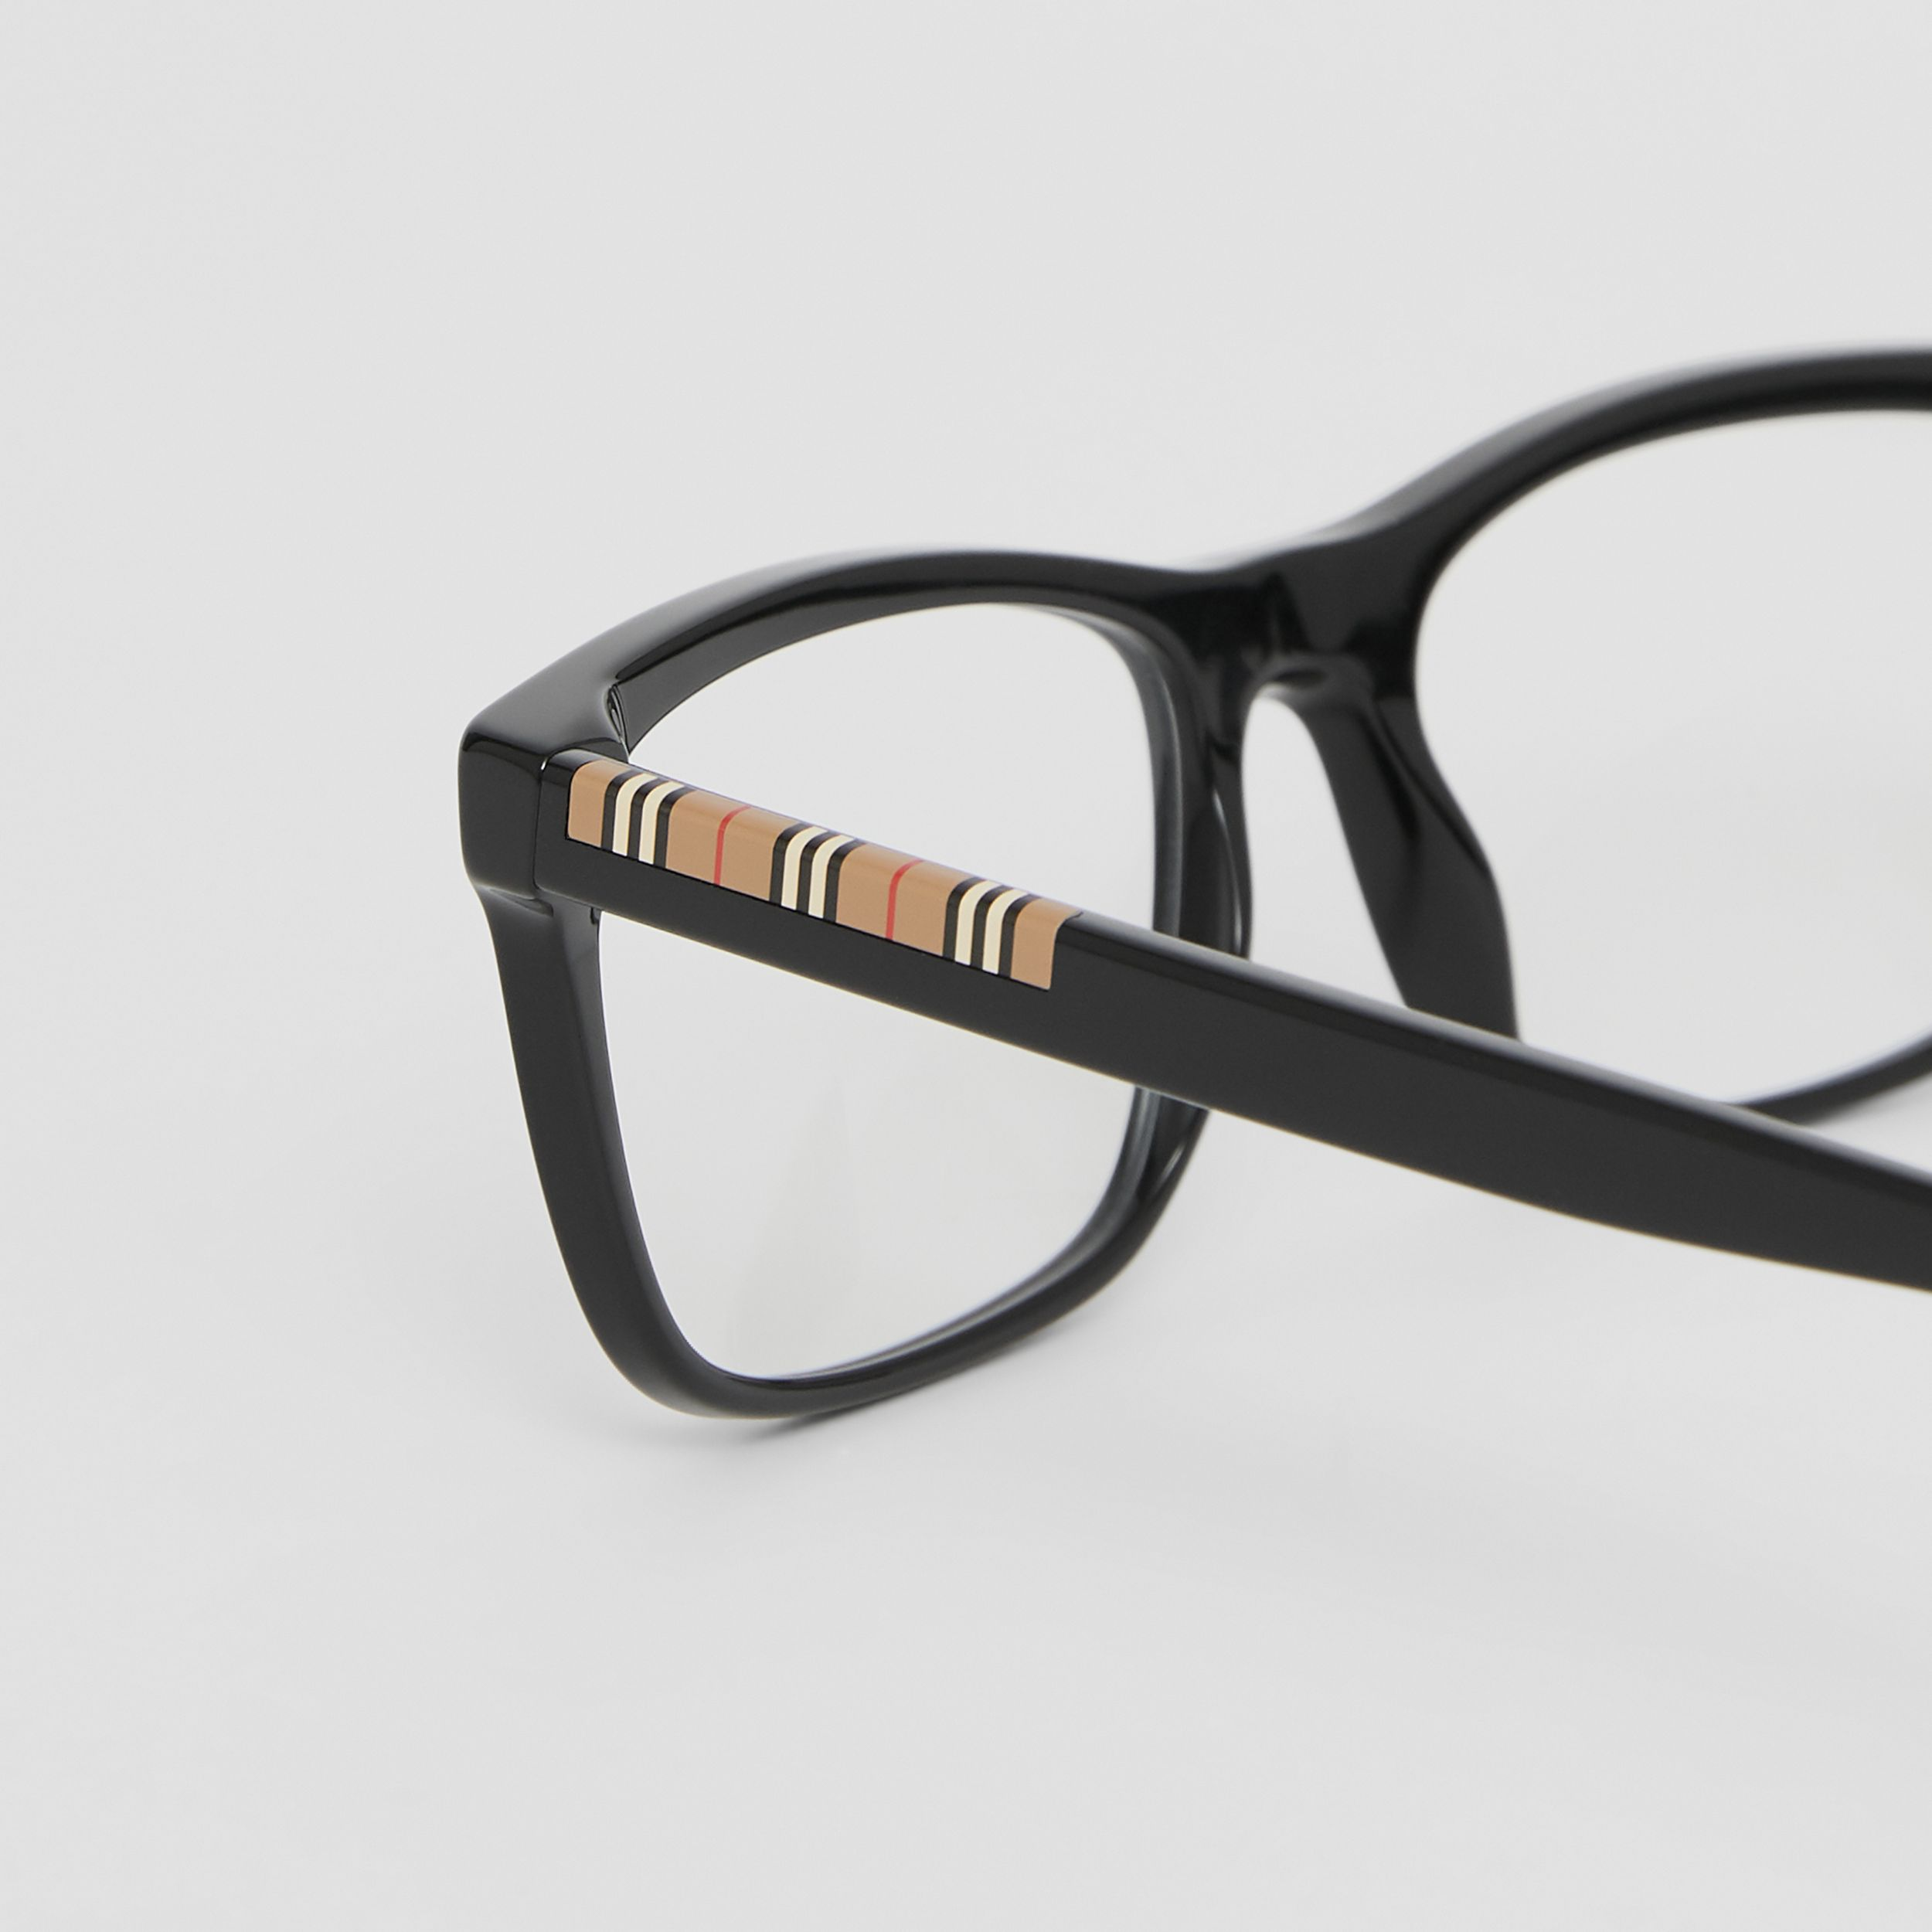 Icon Stripe Detail Rectangular Optical Frames in Black - Men | Burberry - 2